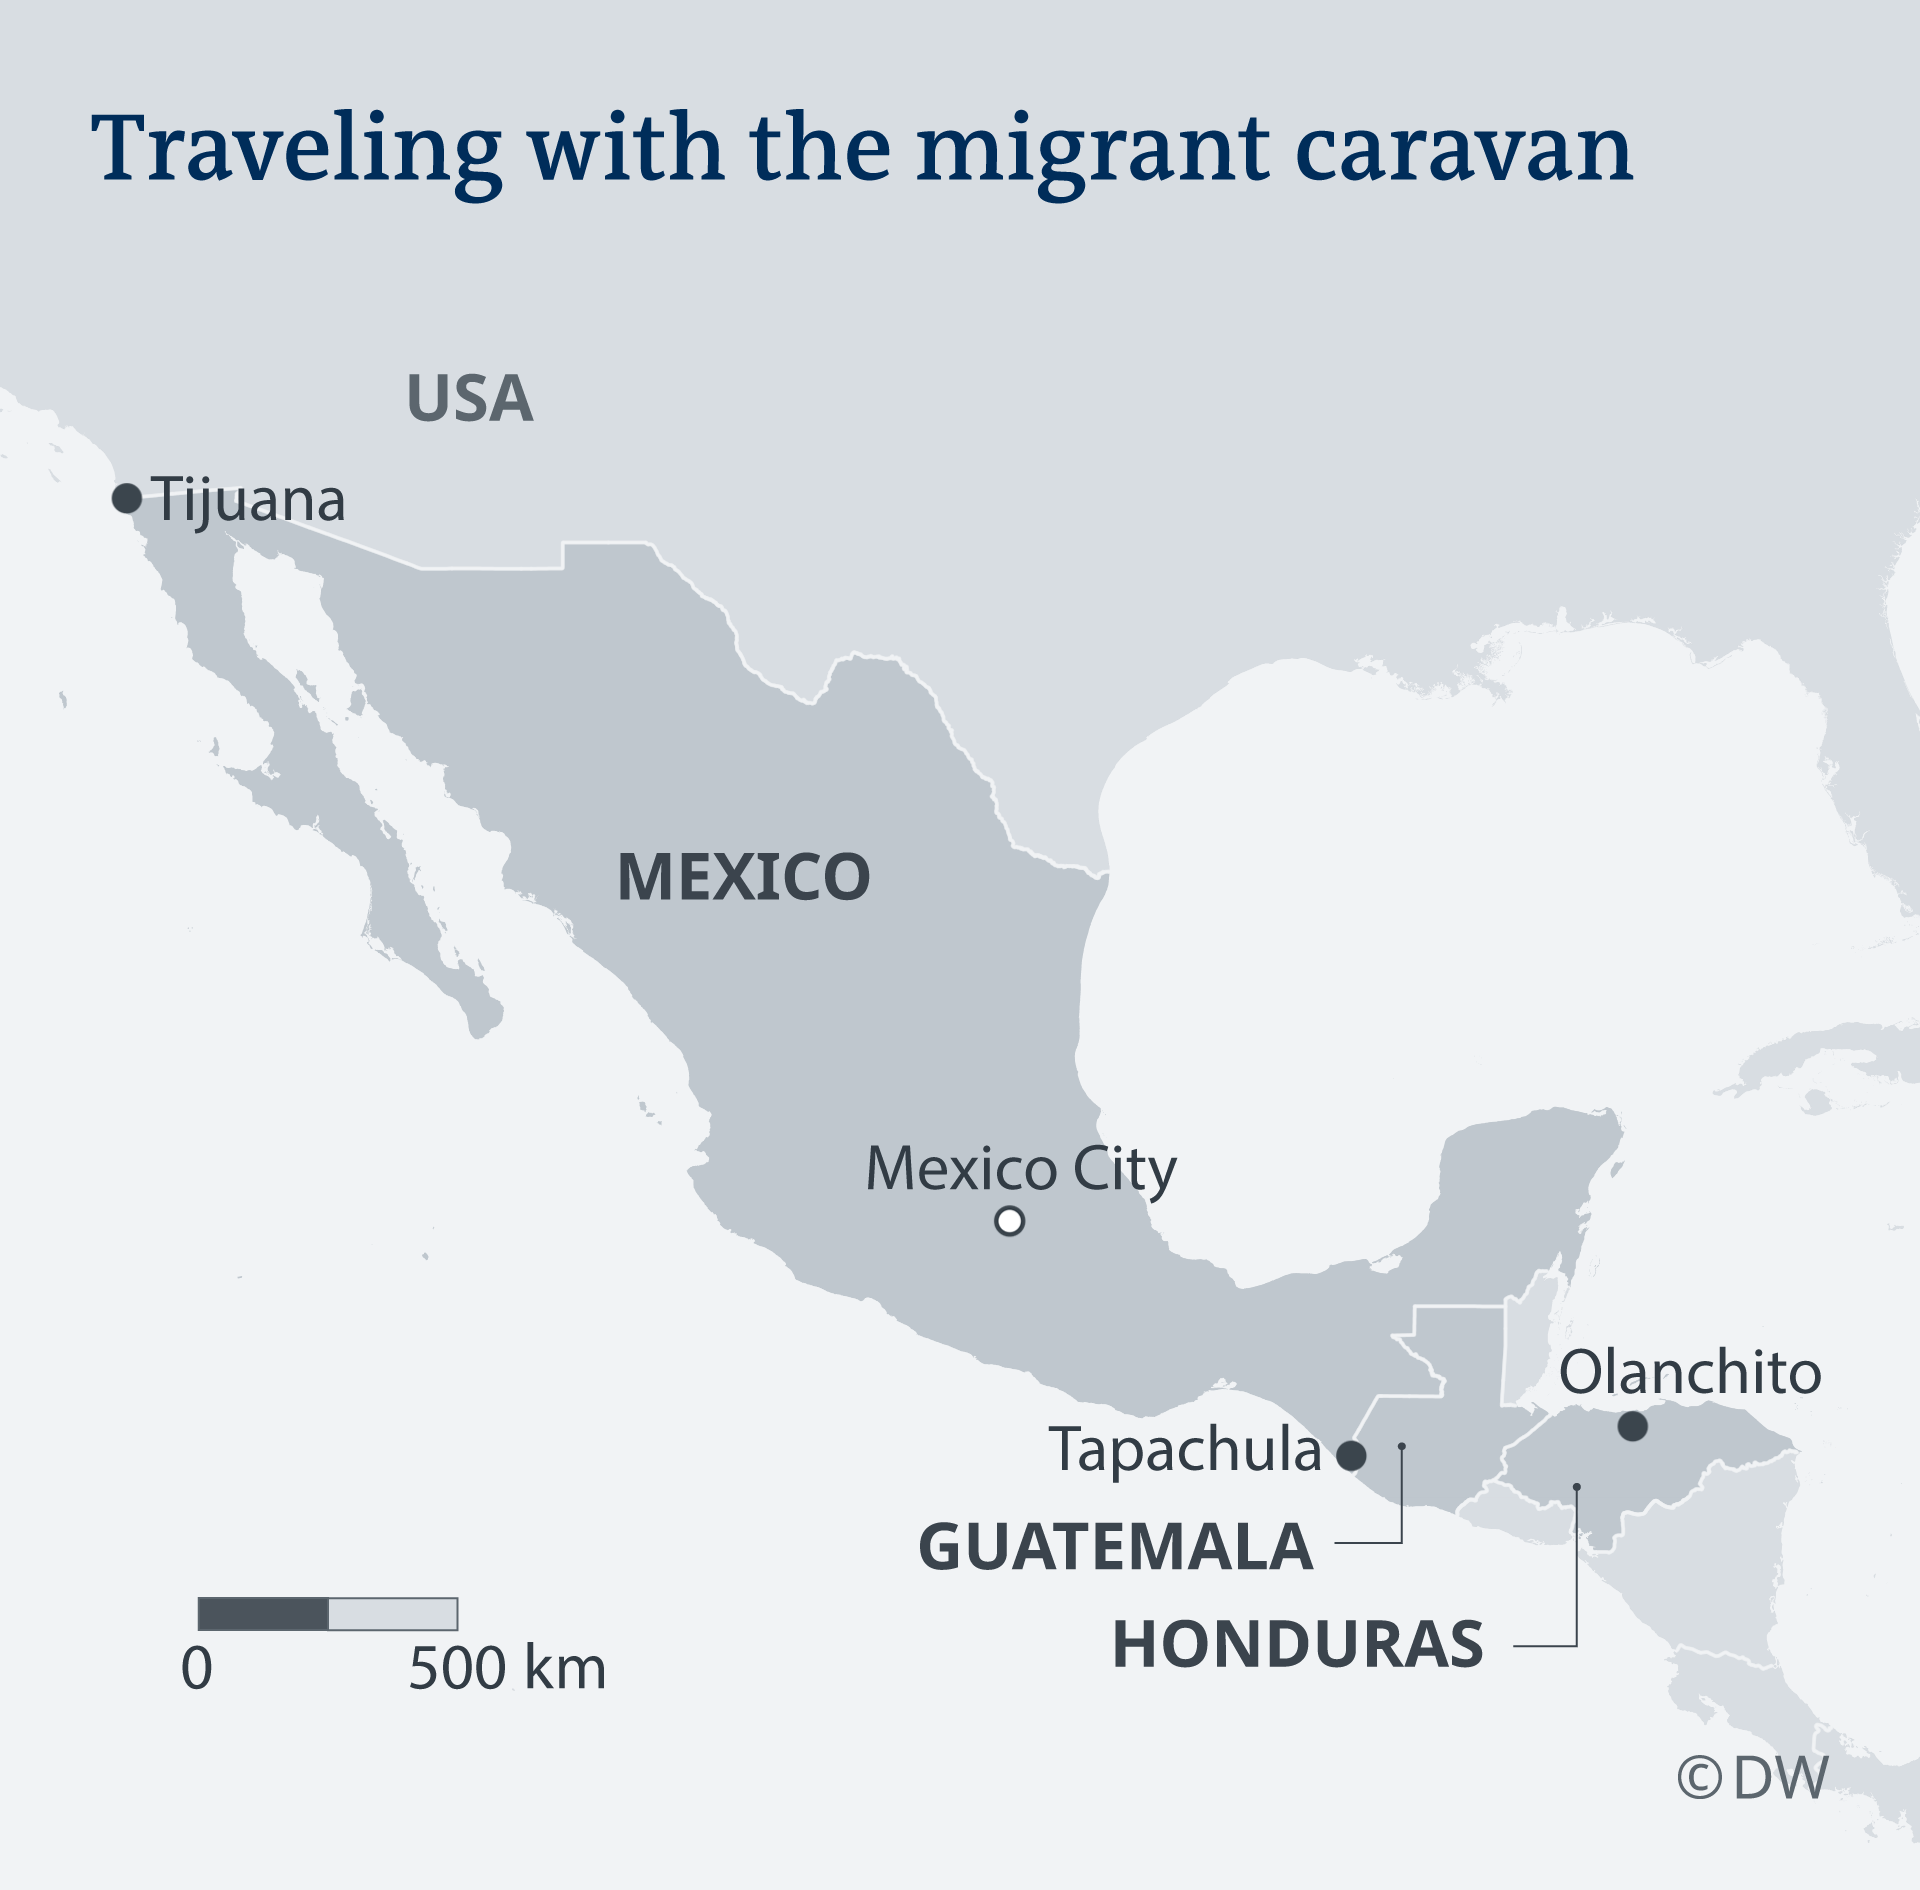 Honduras Mexico Map.Migrant Caravan Was My Only Chance For A Better Life Americas